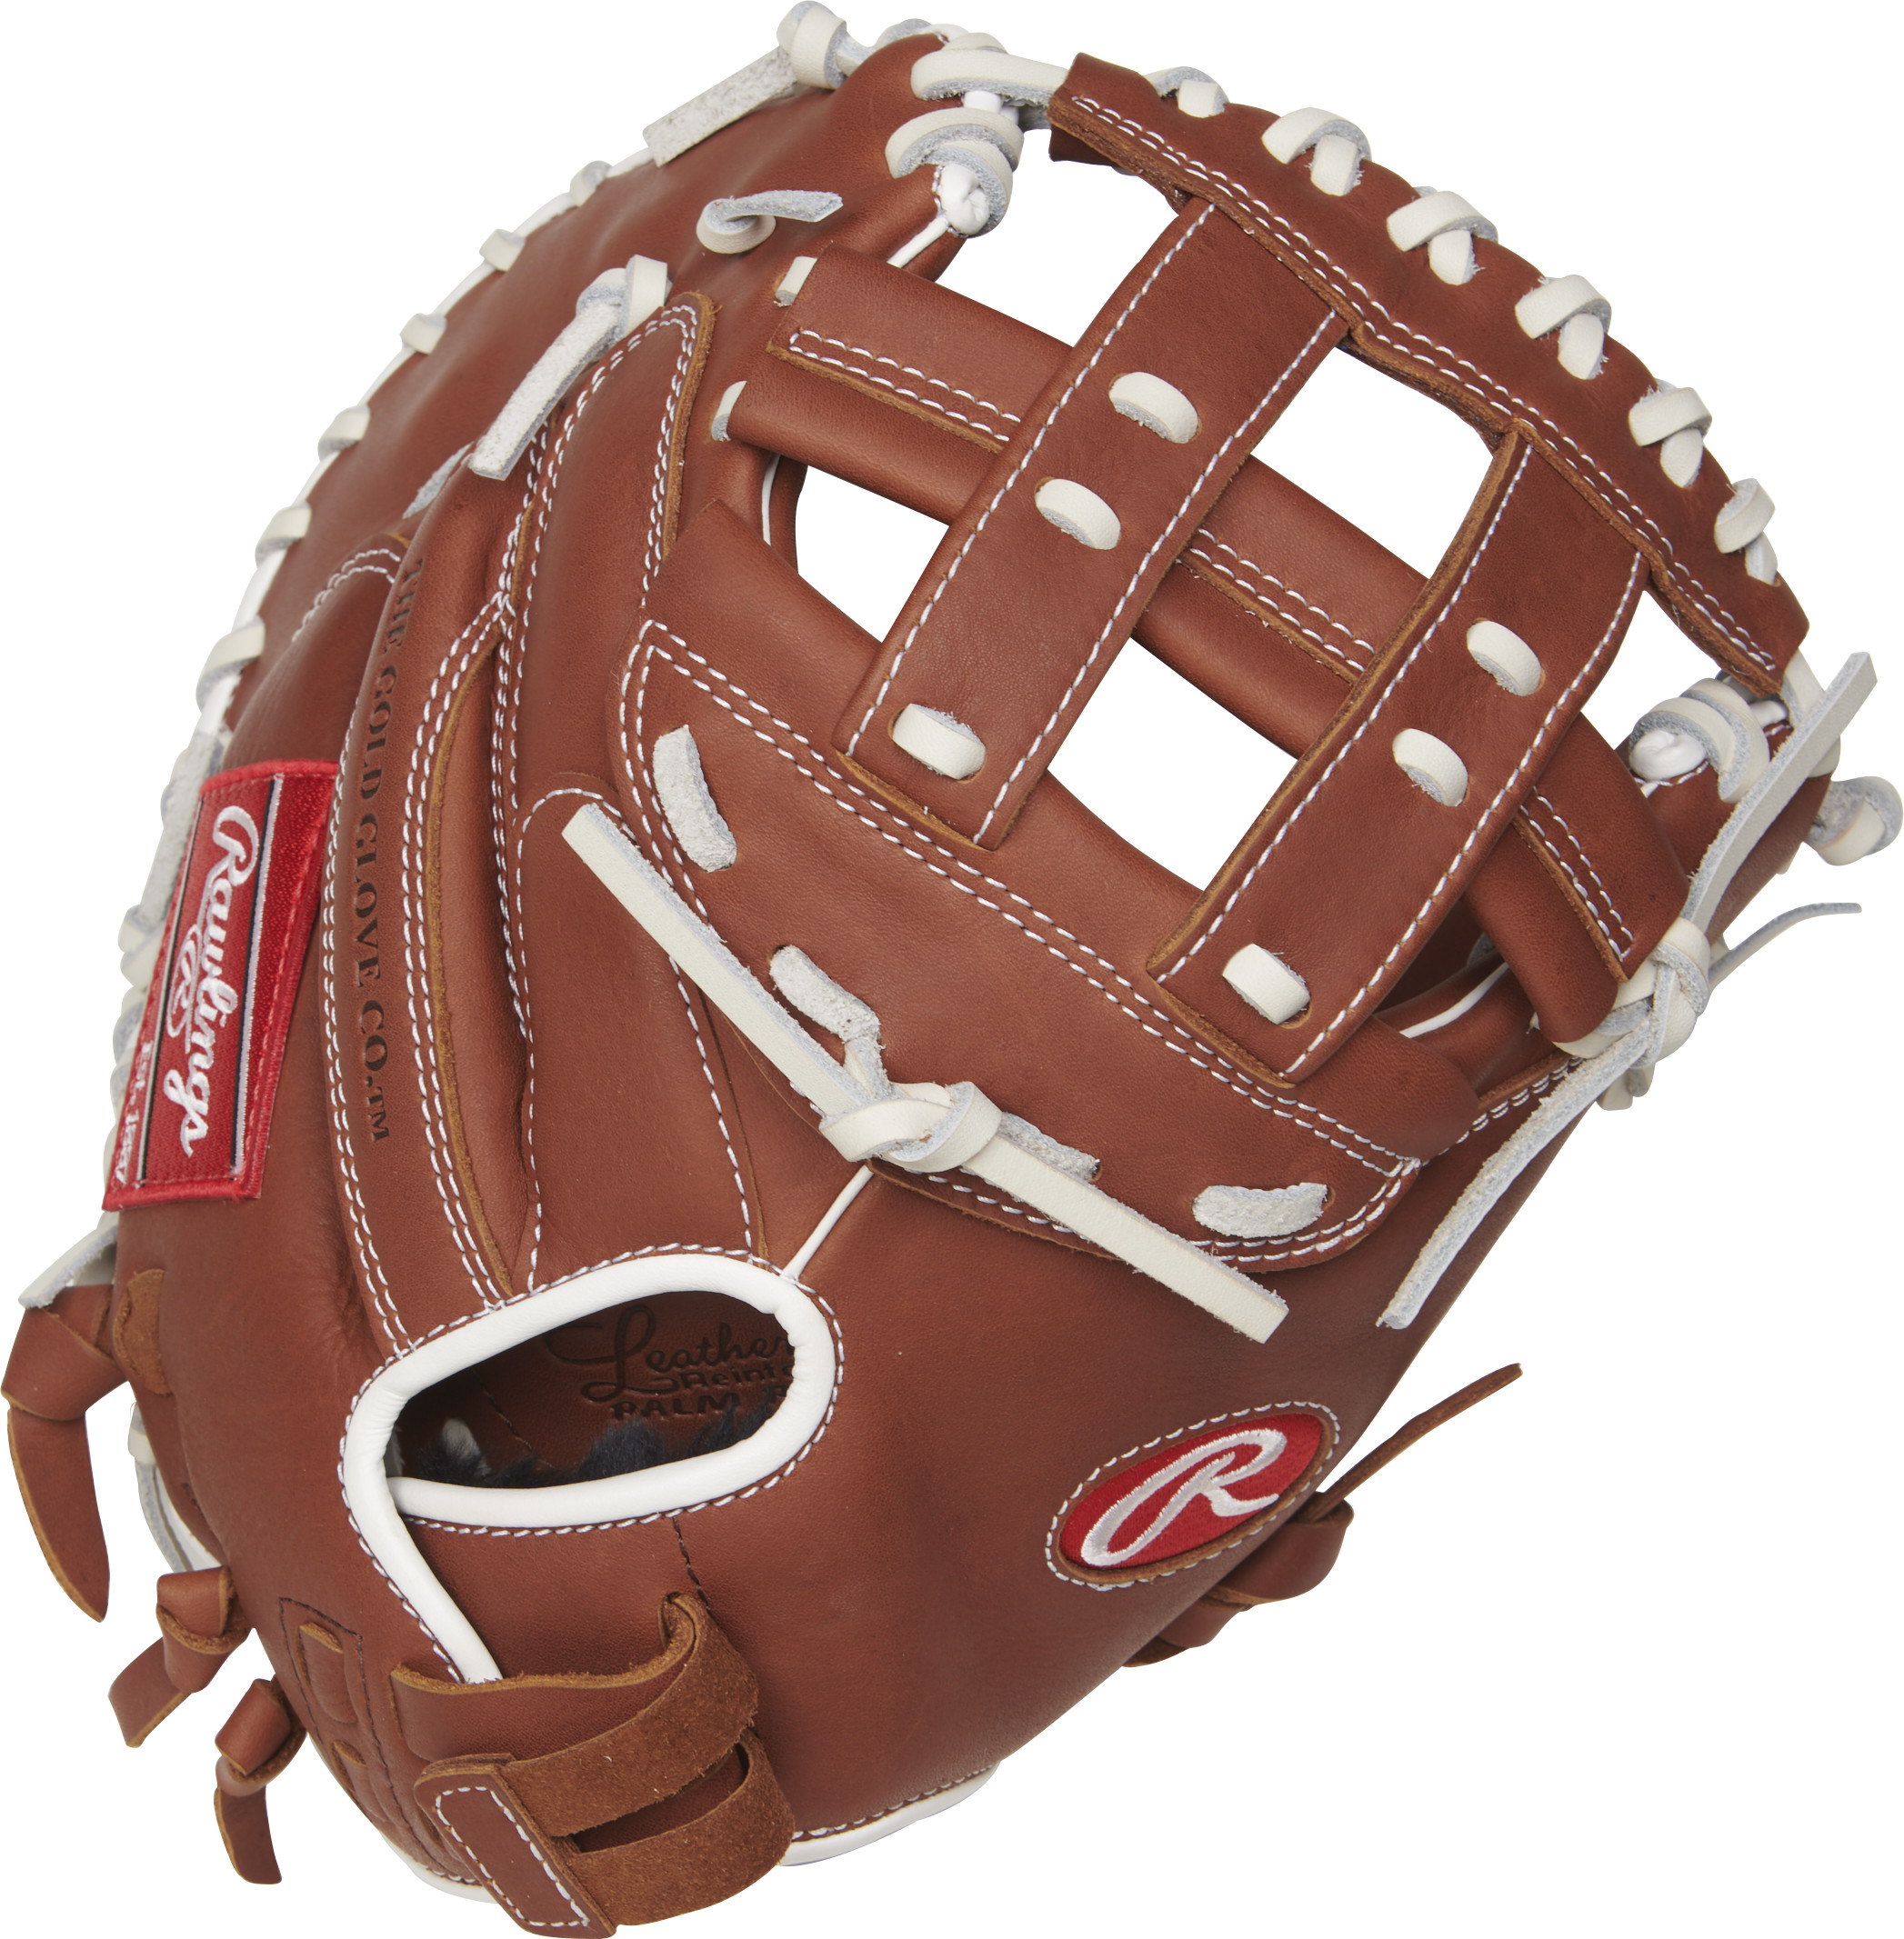 http://www.bestbatdeals.com/images/gloves/rawlings/R9SBCM33-24DB-2.jpg